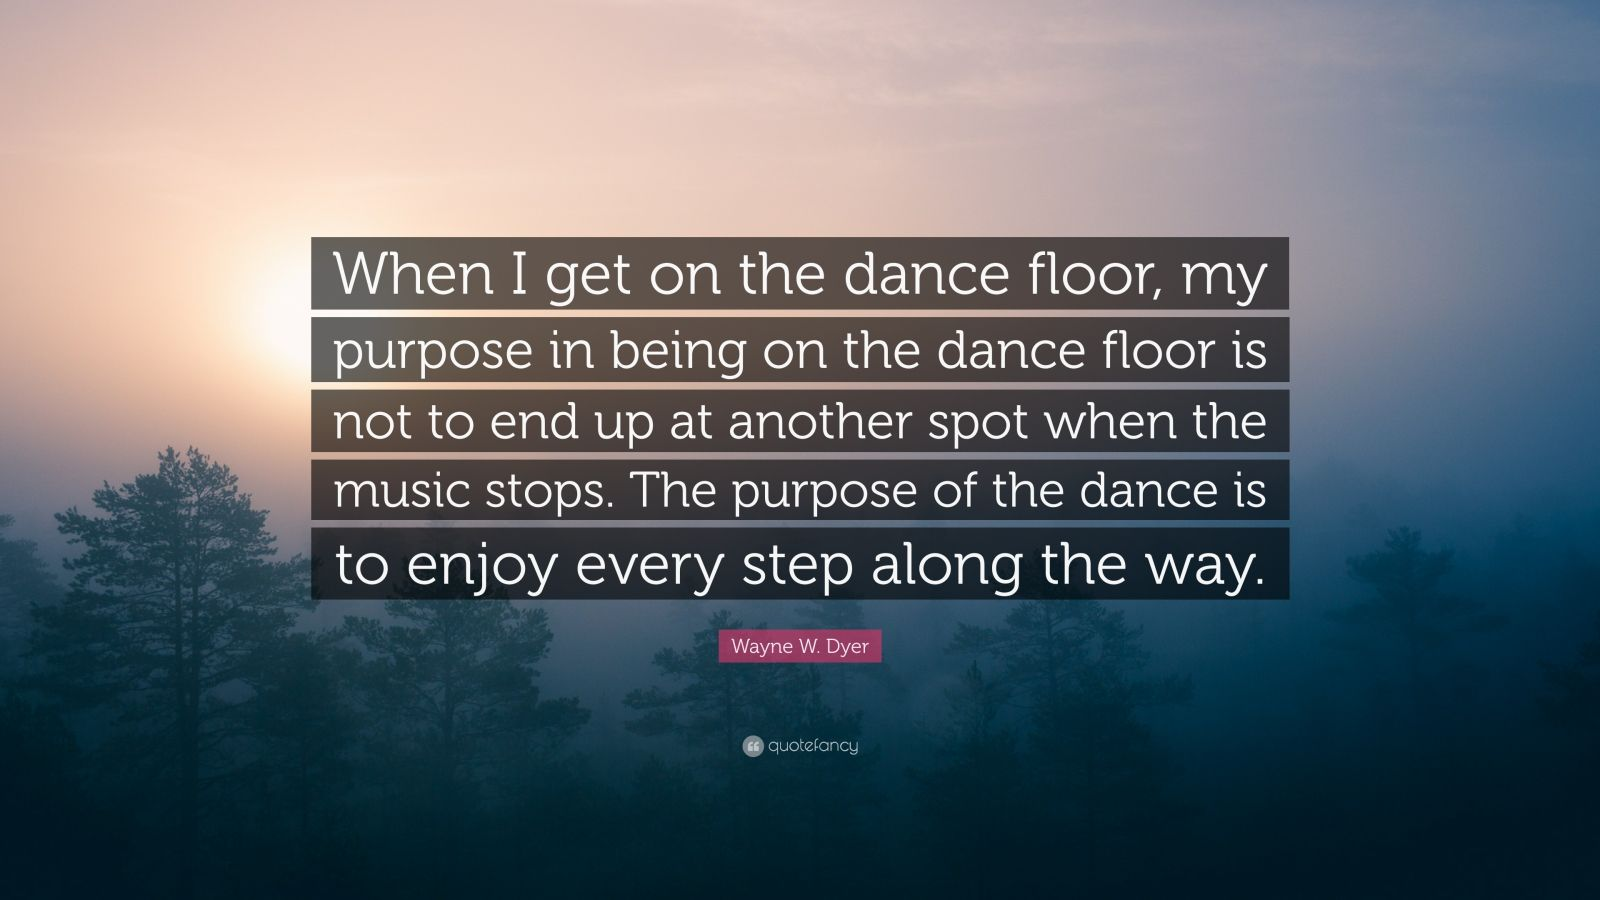 """Wayne W. Dyer Quote: """"When I get on the dance floor, my purpose in being on the dance floor is not to end up at another spot when the music stops. The purpose of the dance is to enjoy every step along the way."""""""